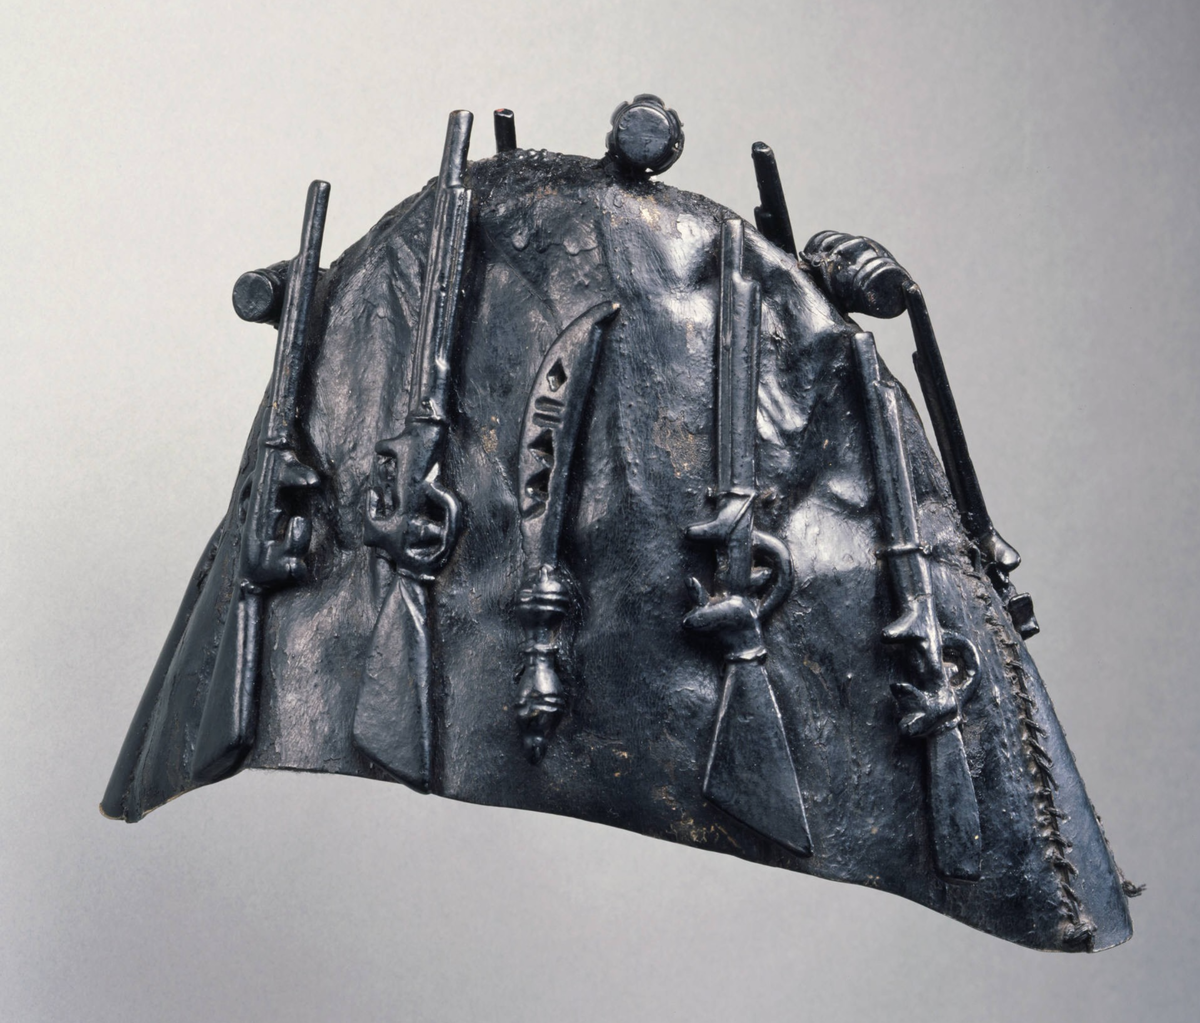 Akan artist, Ghana, Gun bearer or bodyguard's cap (krɔbɔnkyɛ), 19th century. Duiker rawhide, wood, paint, and leather. Bequest of John B. Elliott, Class of 1951